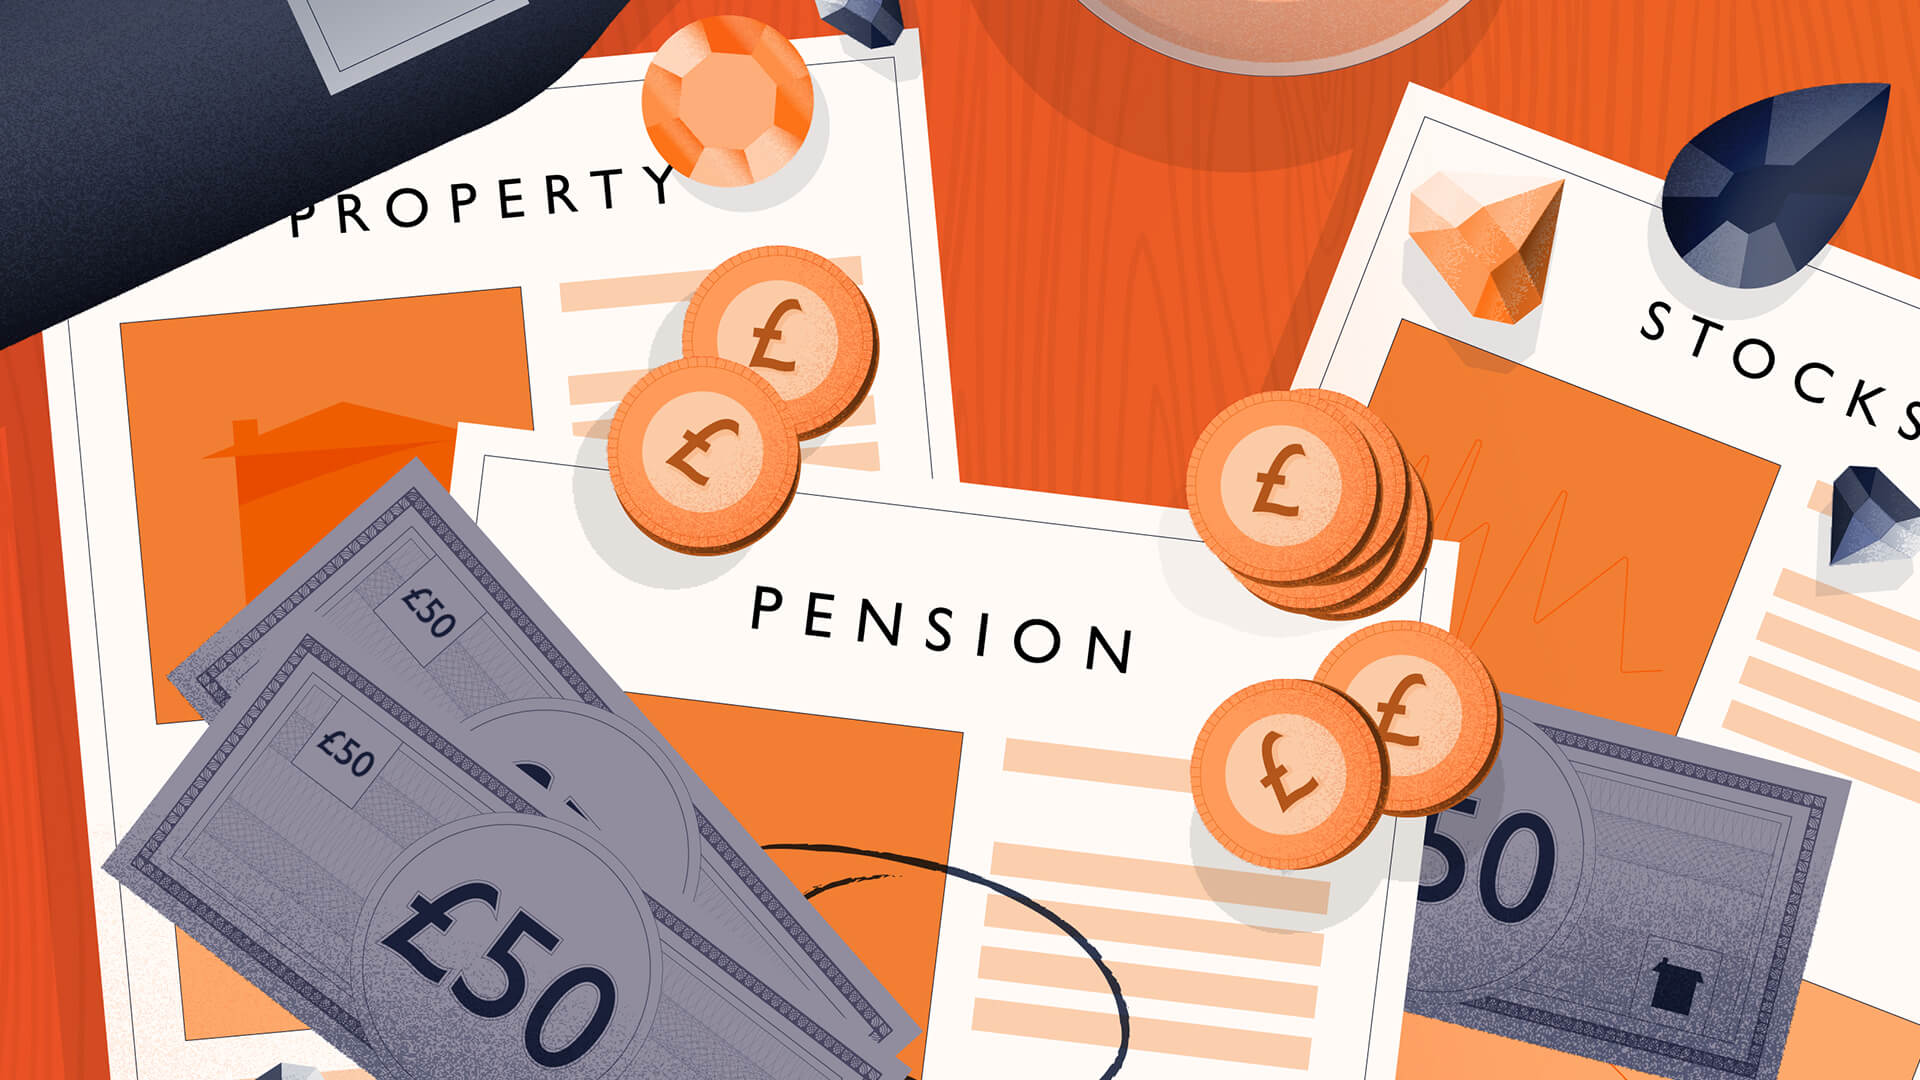 Property vs Pension hero